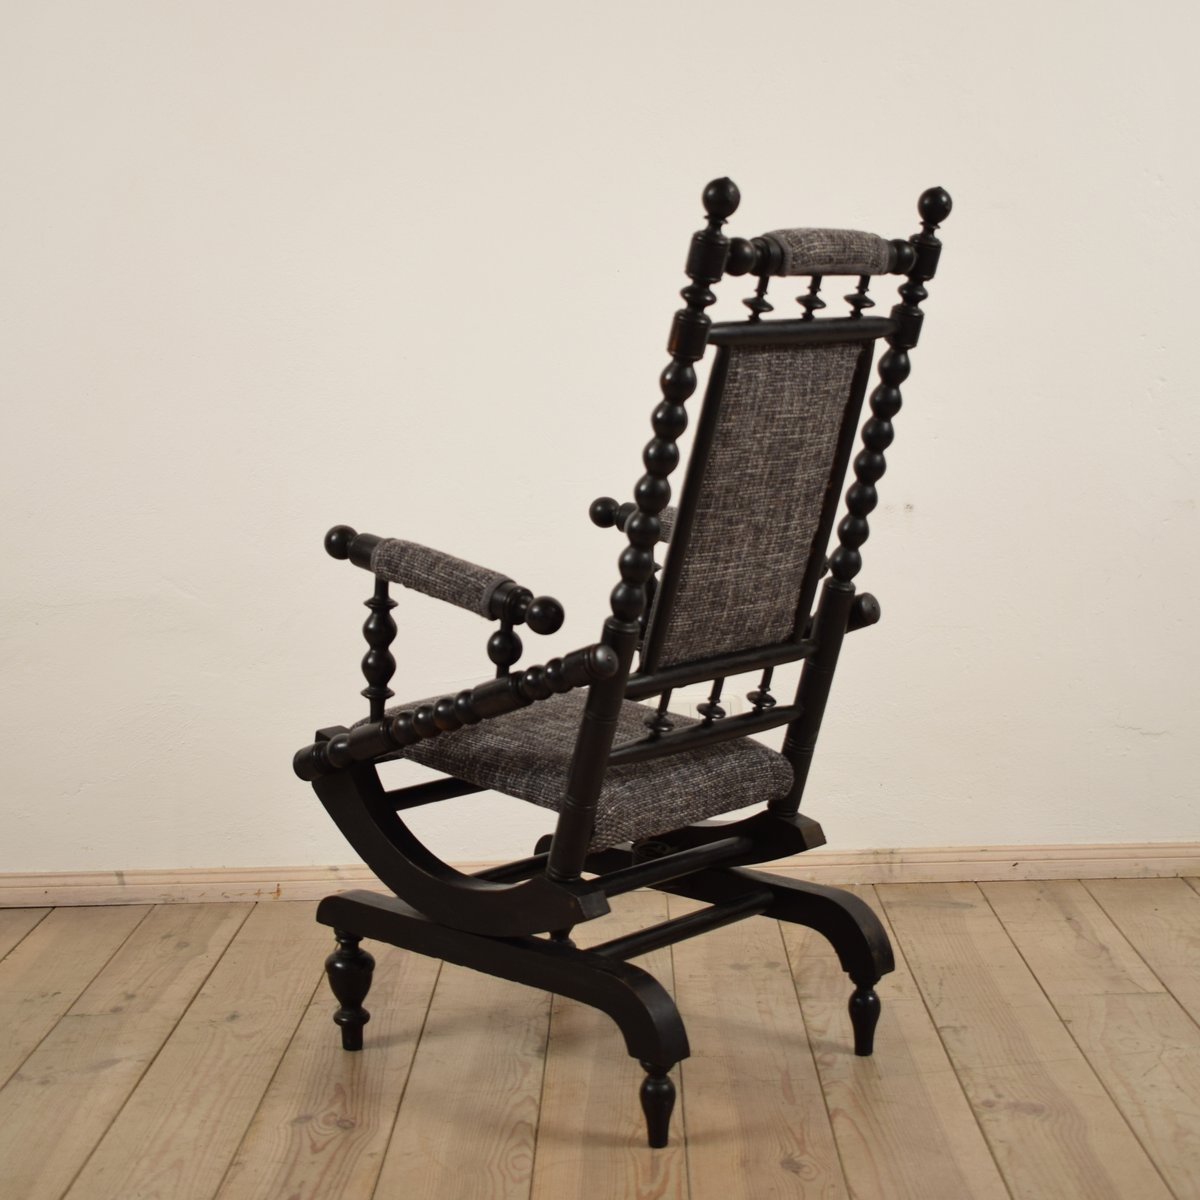 Antique American Rocking Chair 12. €1,300.00 - Antique American Rocking Chair For Sale At Pamono